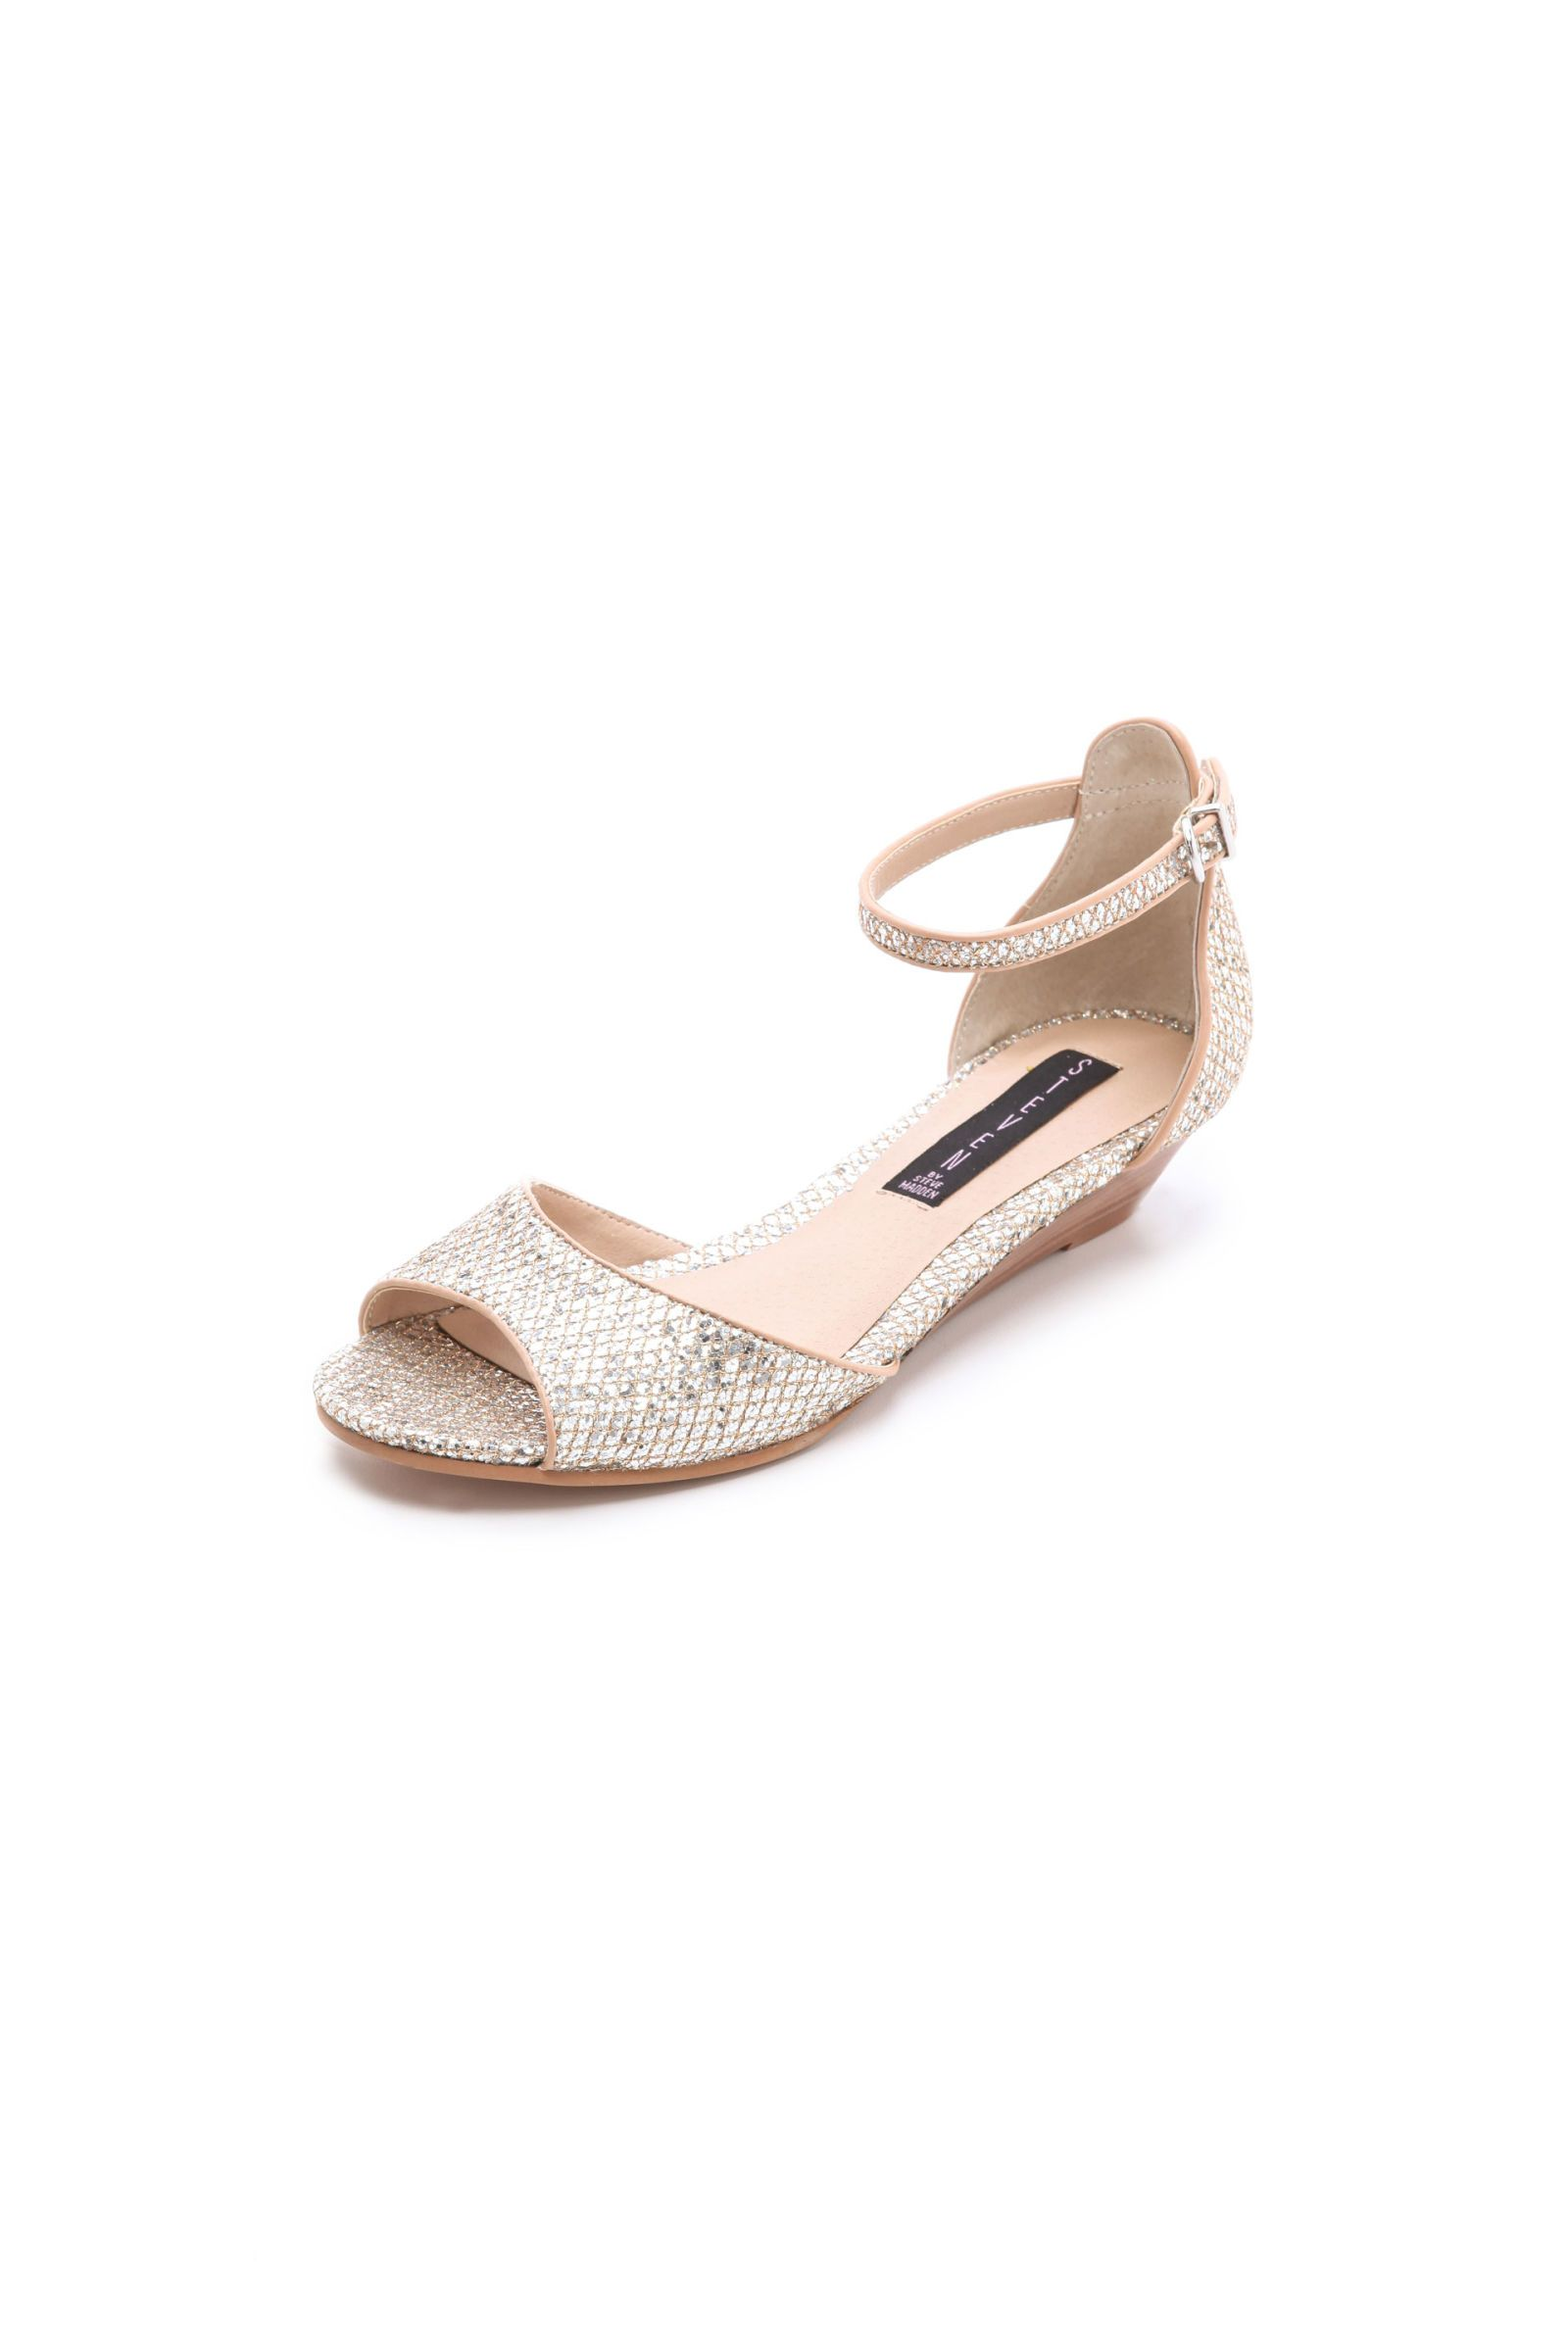 sparkly silver wedge sandal